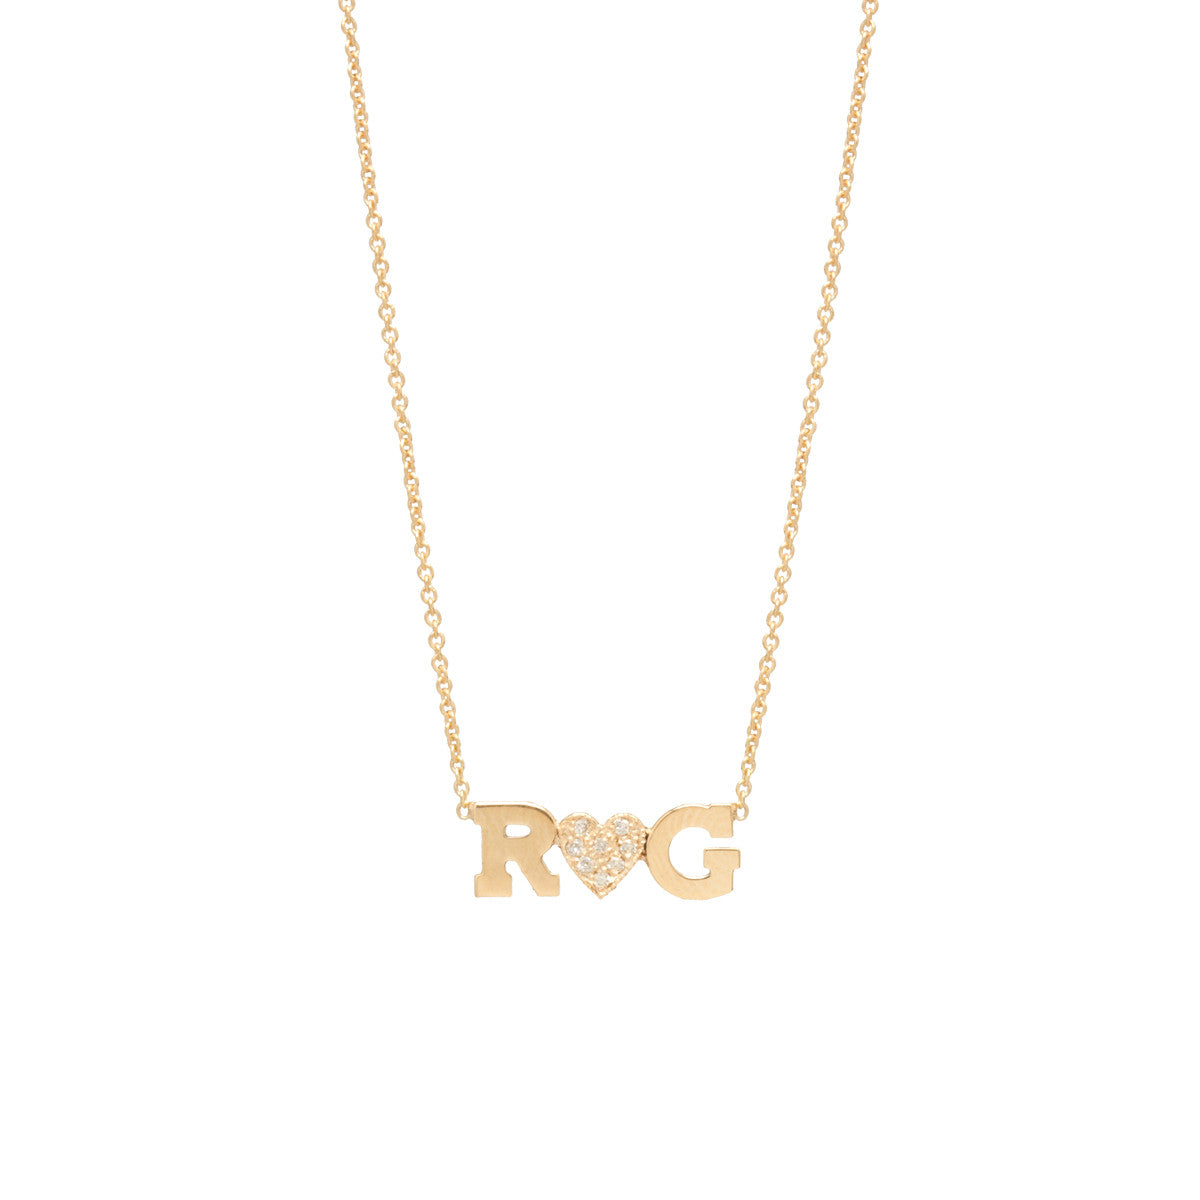 Zoë Chicco 14kt Yellow Gold Two Letter and Diamond Heart Necklace